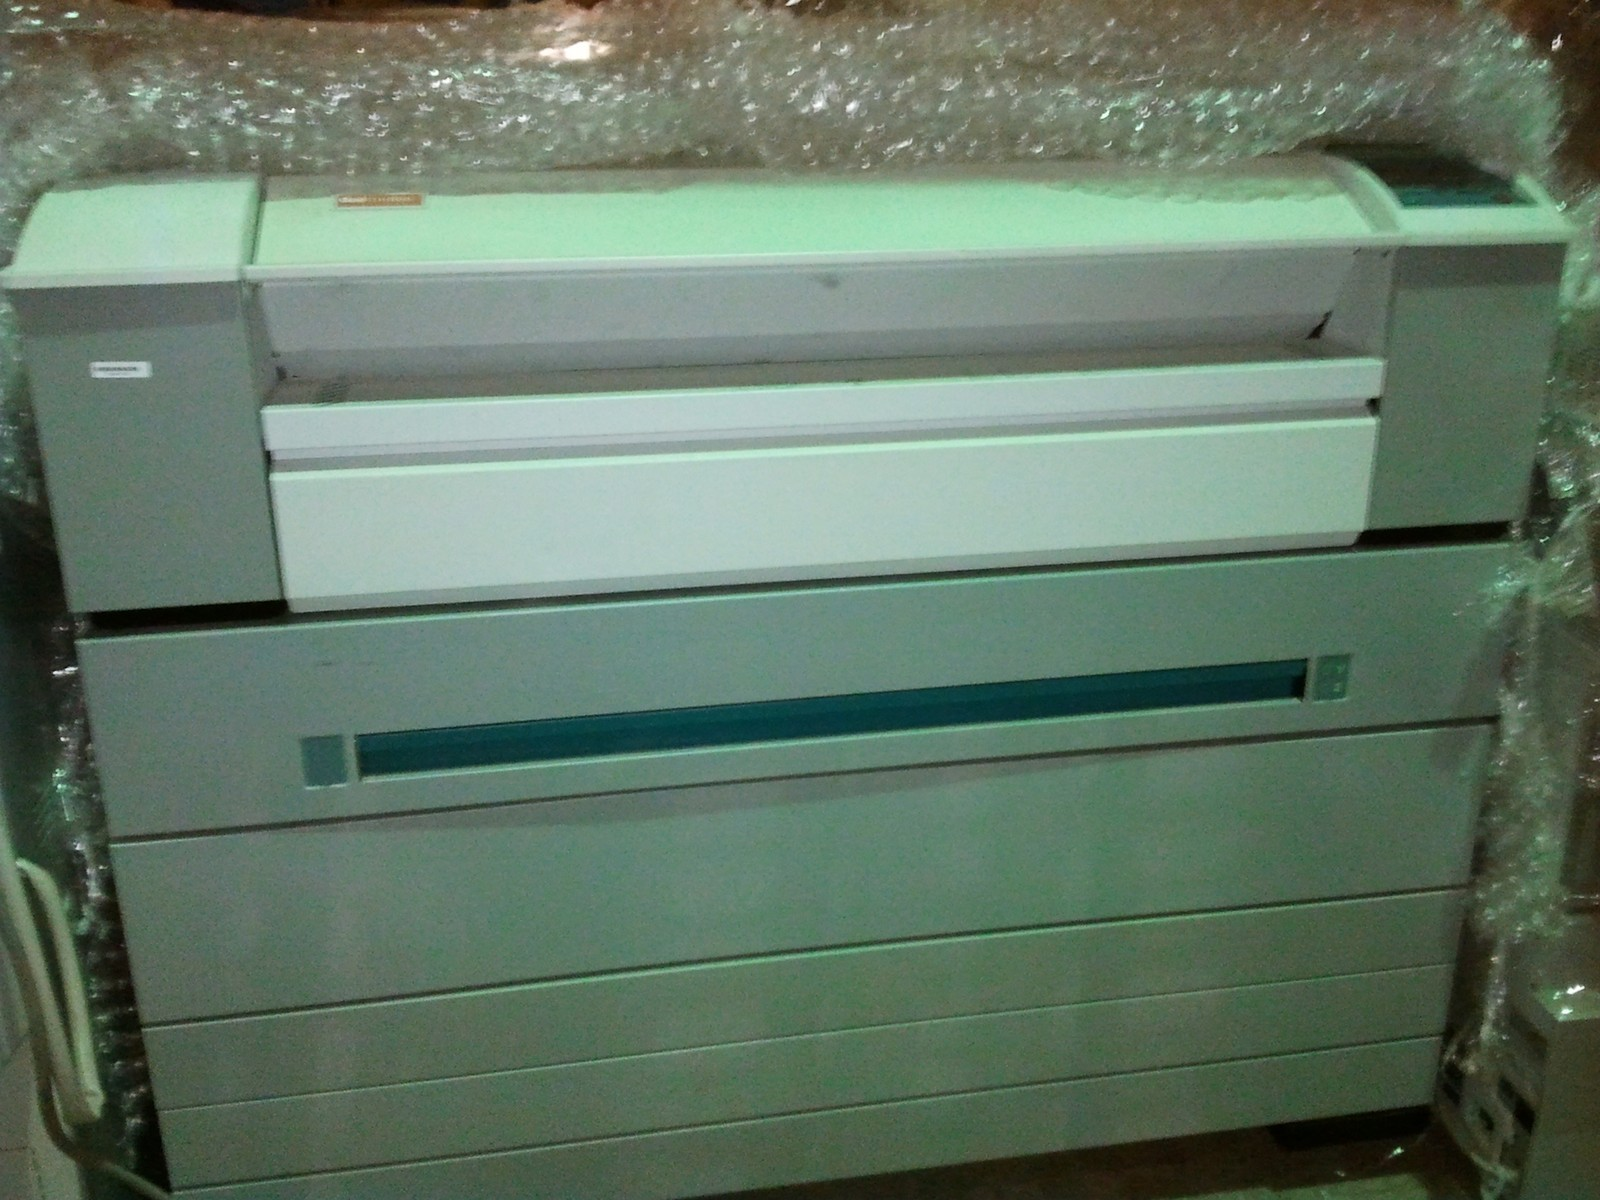 LOW 365k Meter OCE TDS600 Engineering Printer TDS 600 4 Paper Rolls Heavy Duty